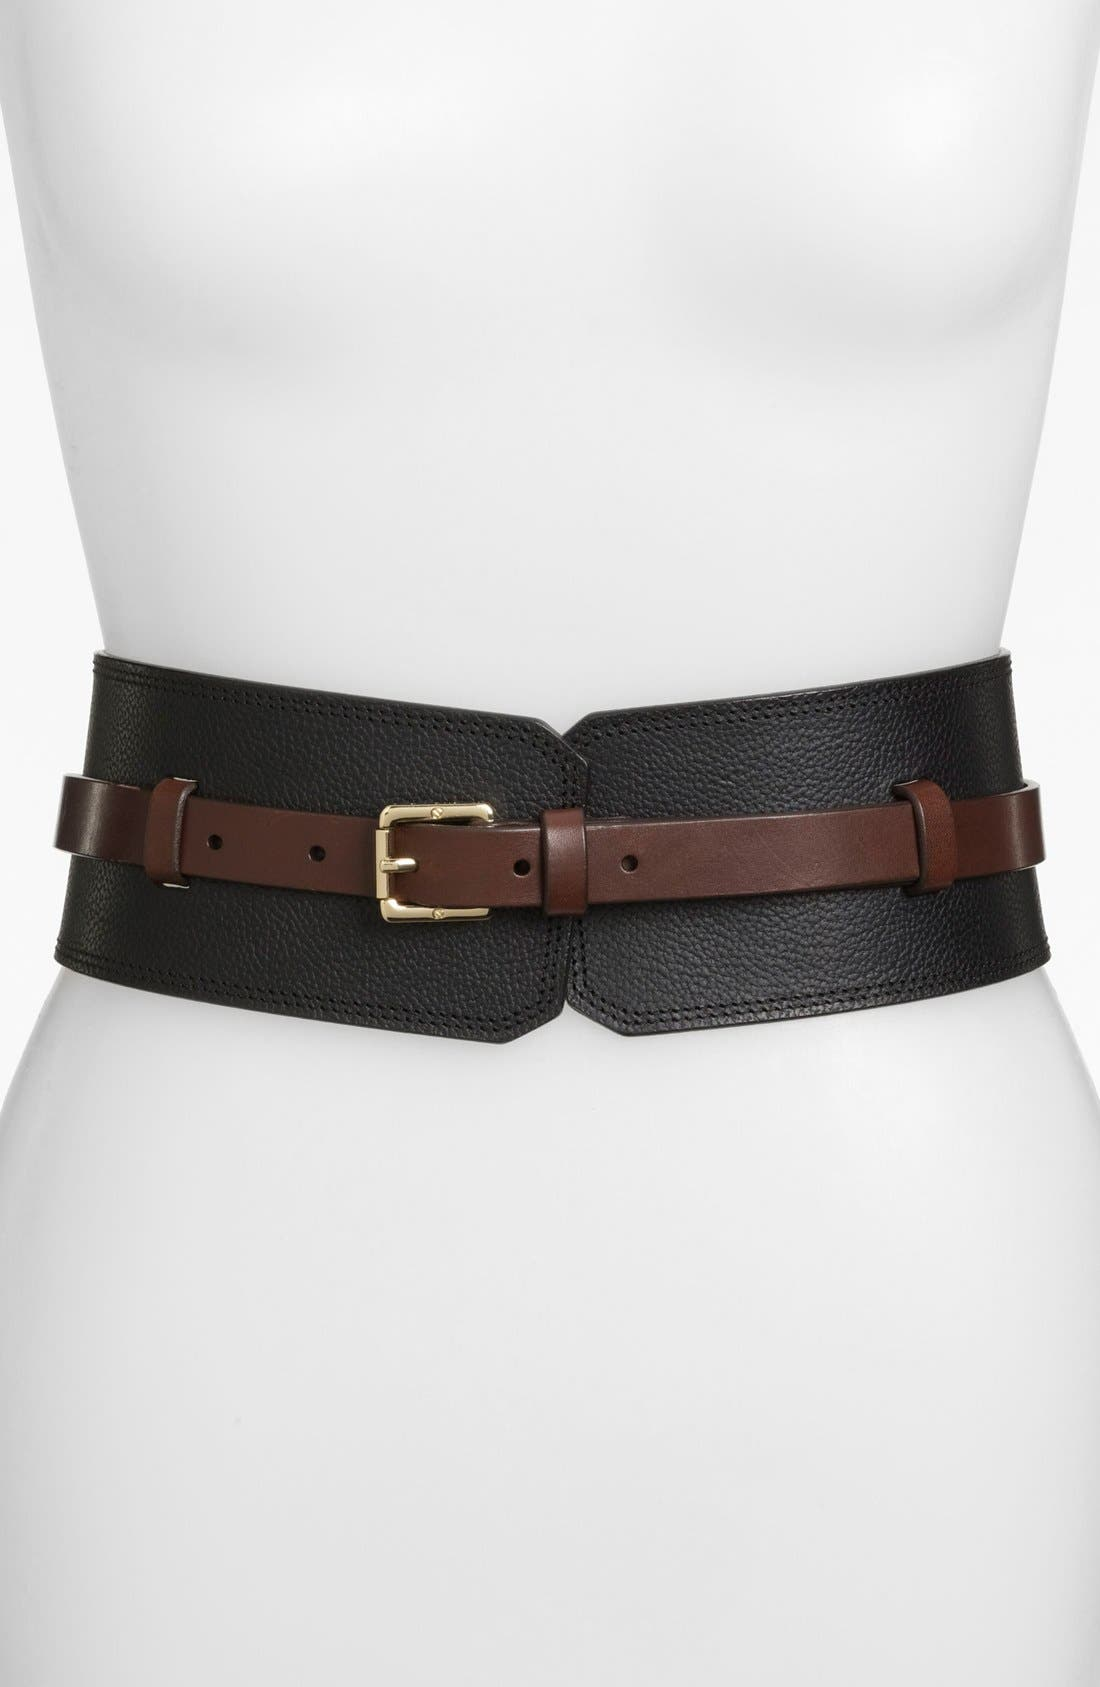 Alternate Image 1 Selected - Tory Burch Wide Leather Belt